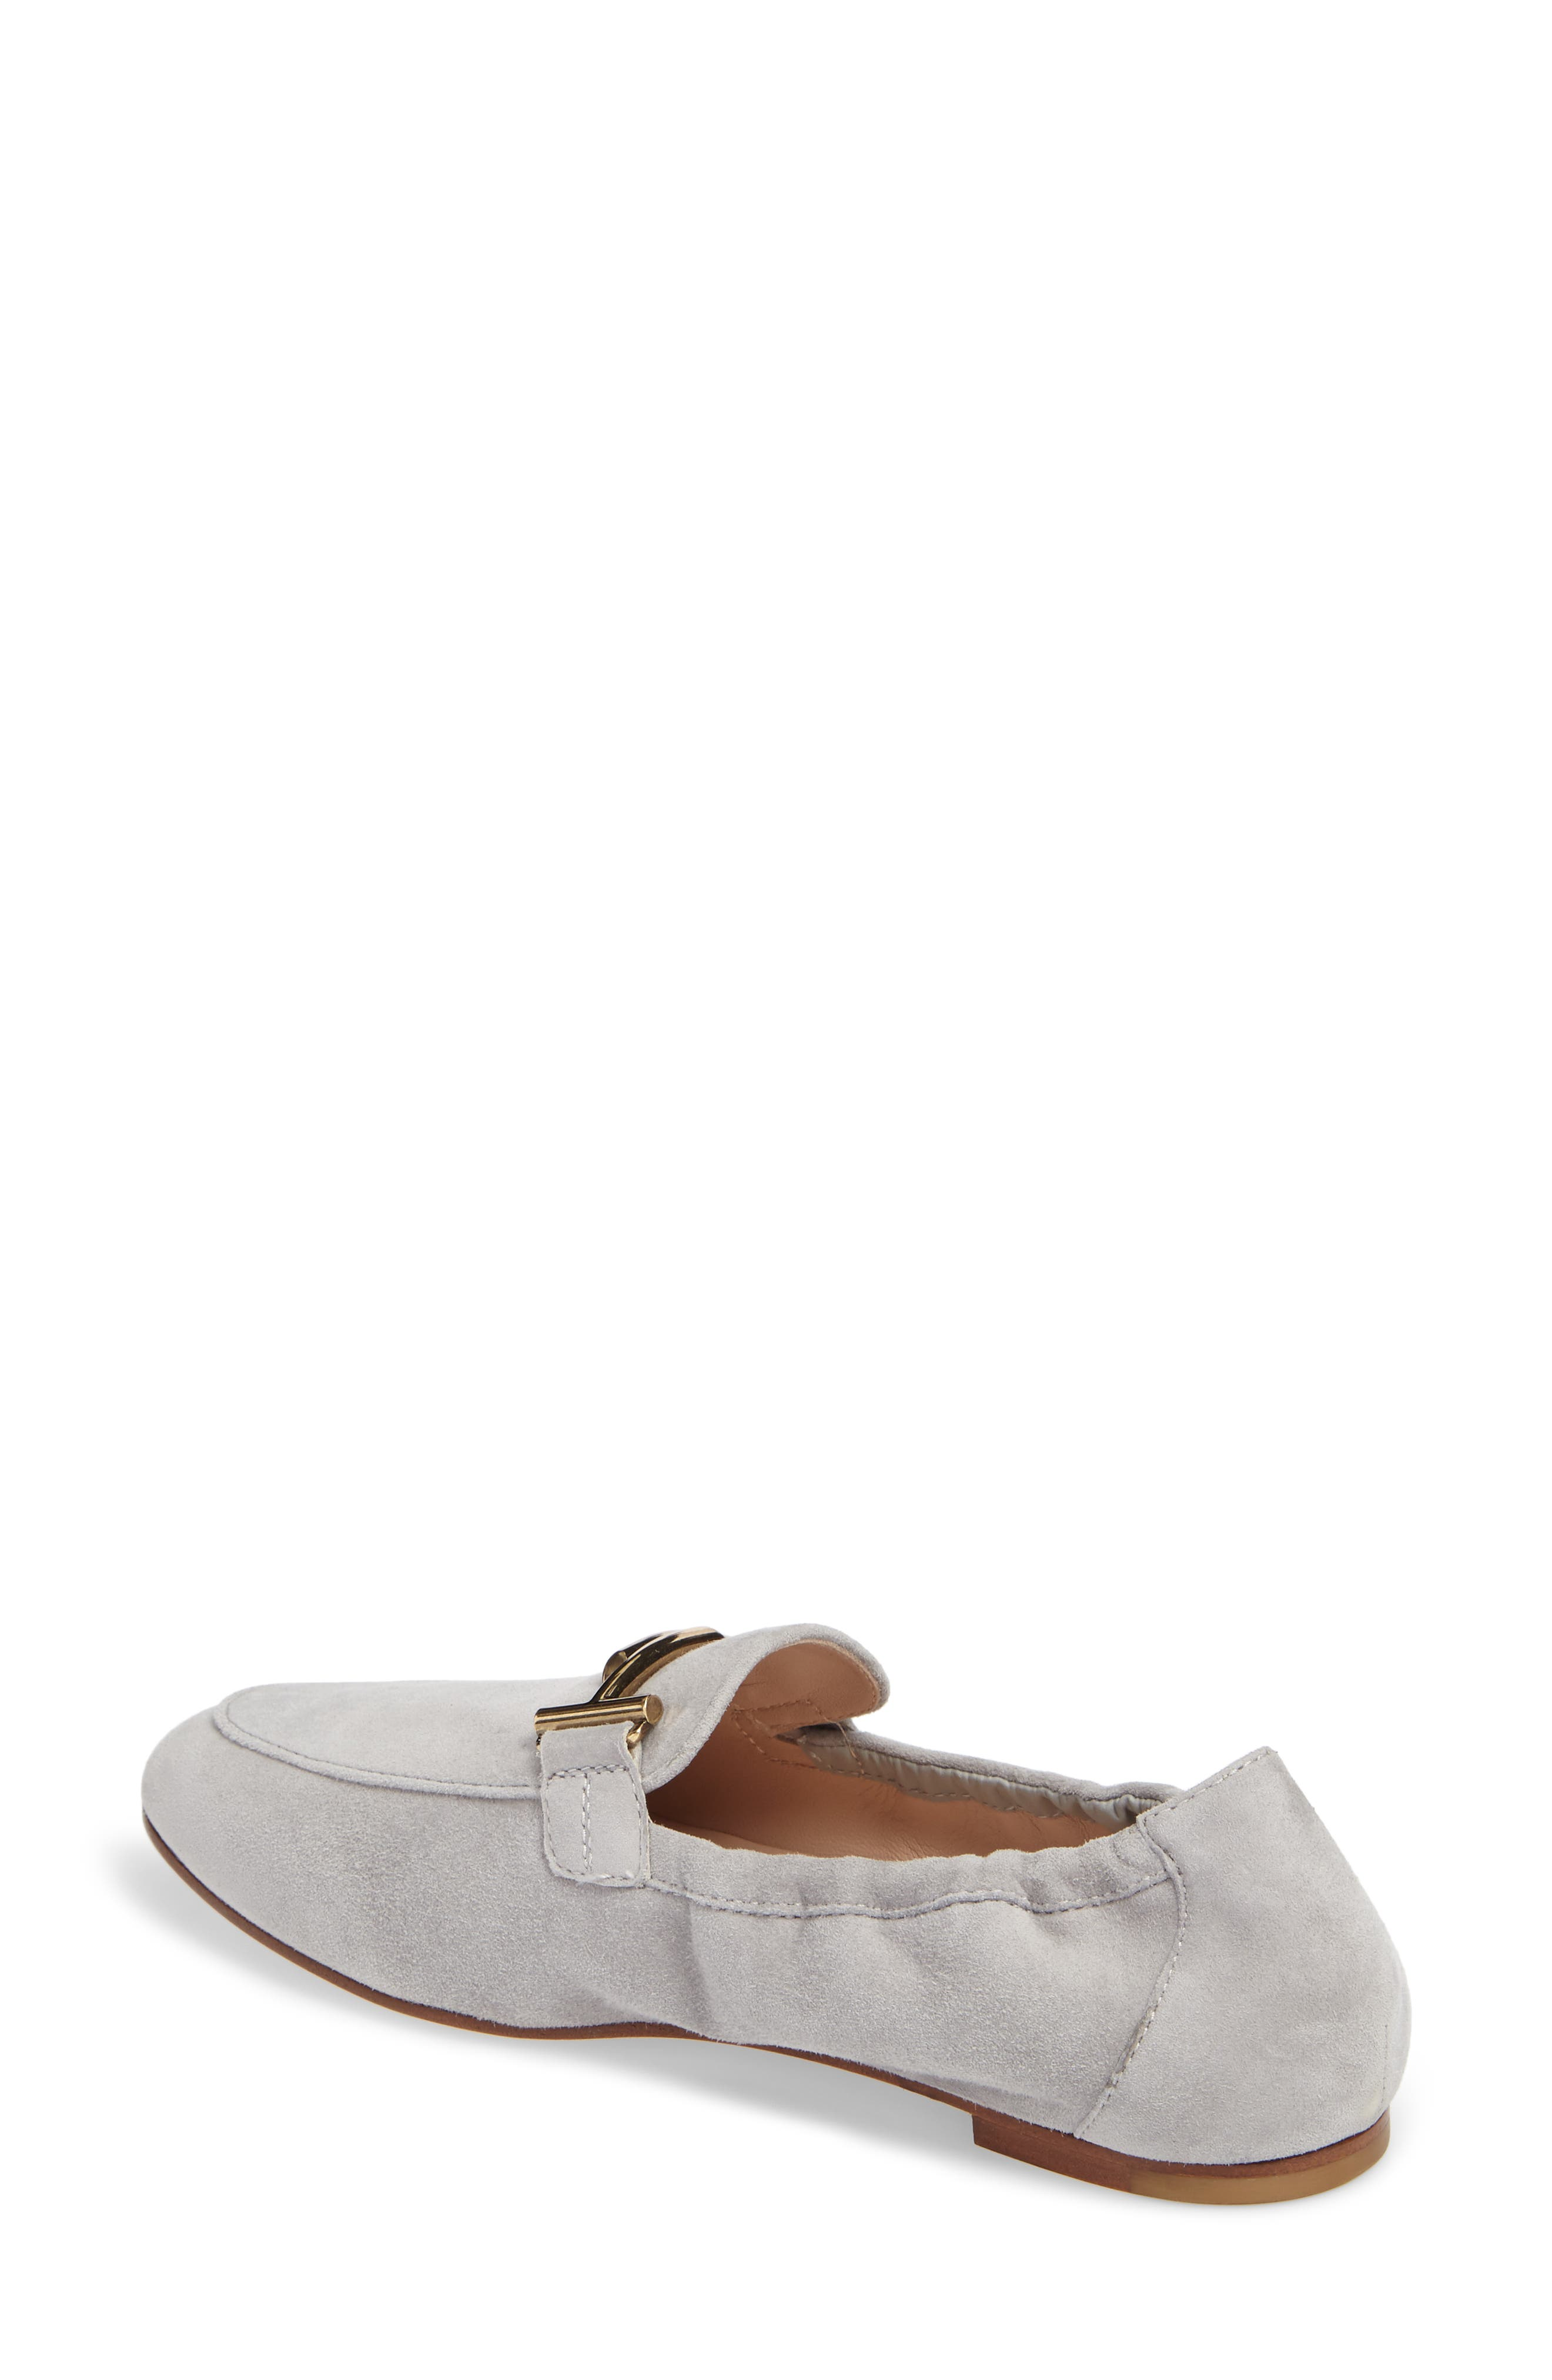 Double T Scrunch Loafer,                             Alternate thumbnail 2, color,                             020